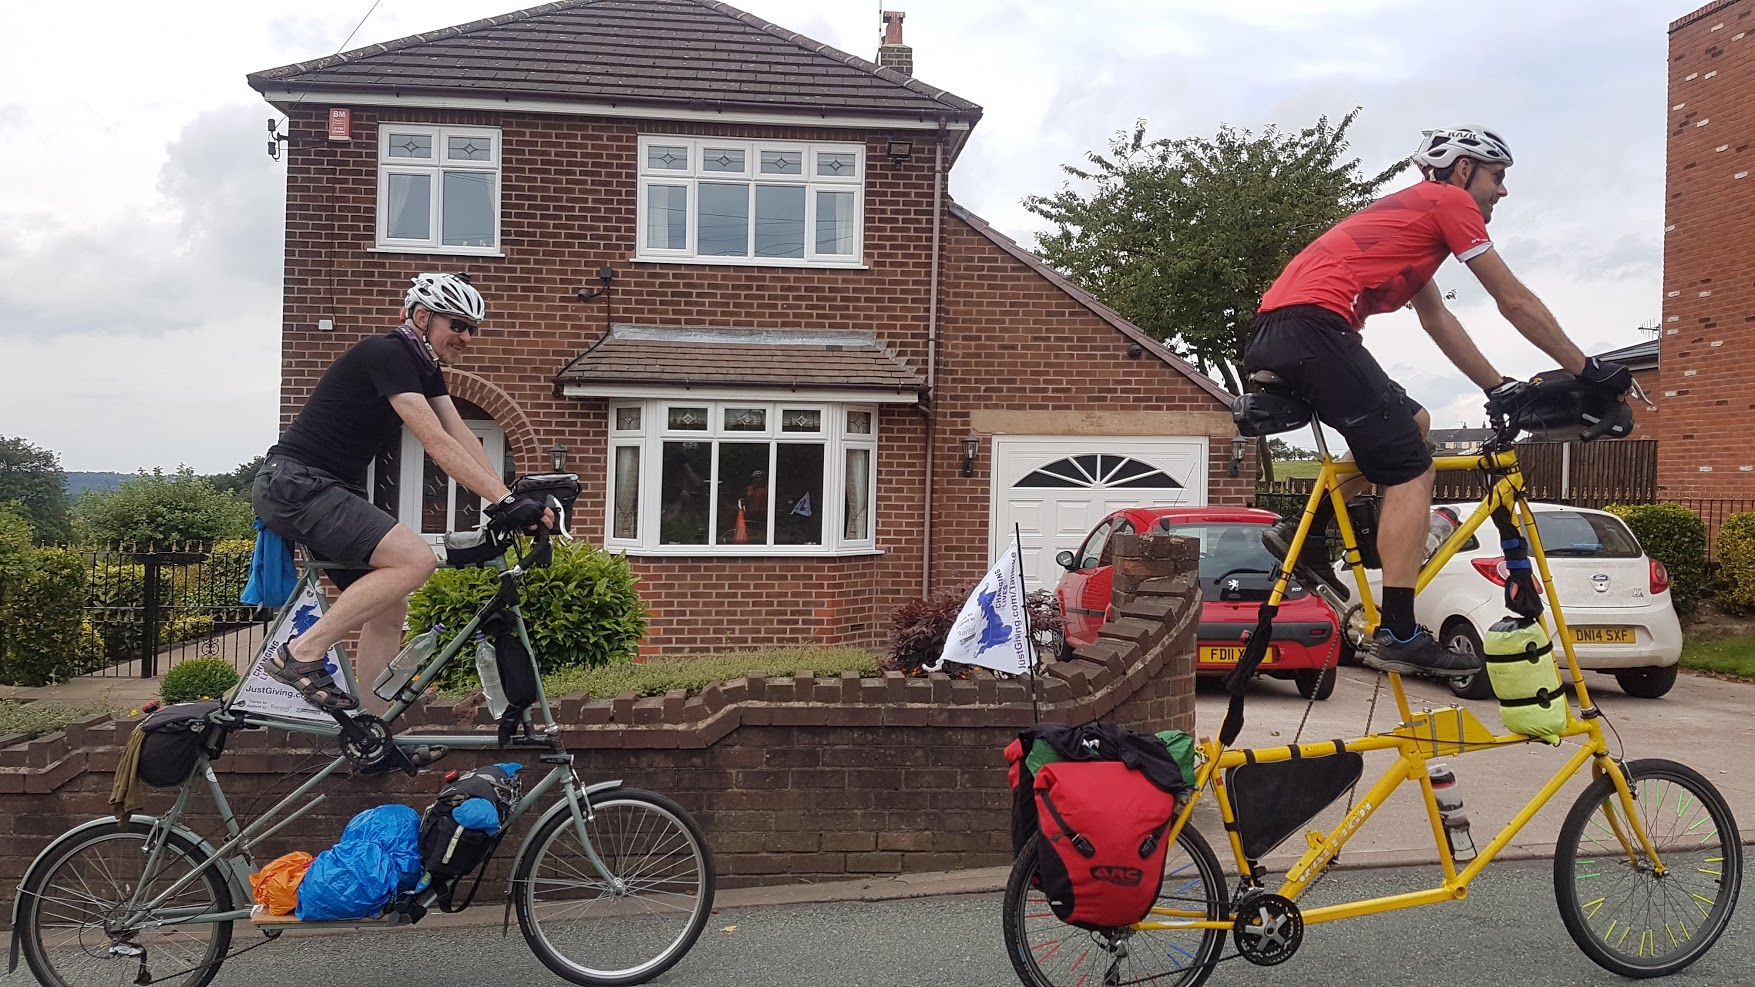 And yes, they are heading for Mow Cop.